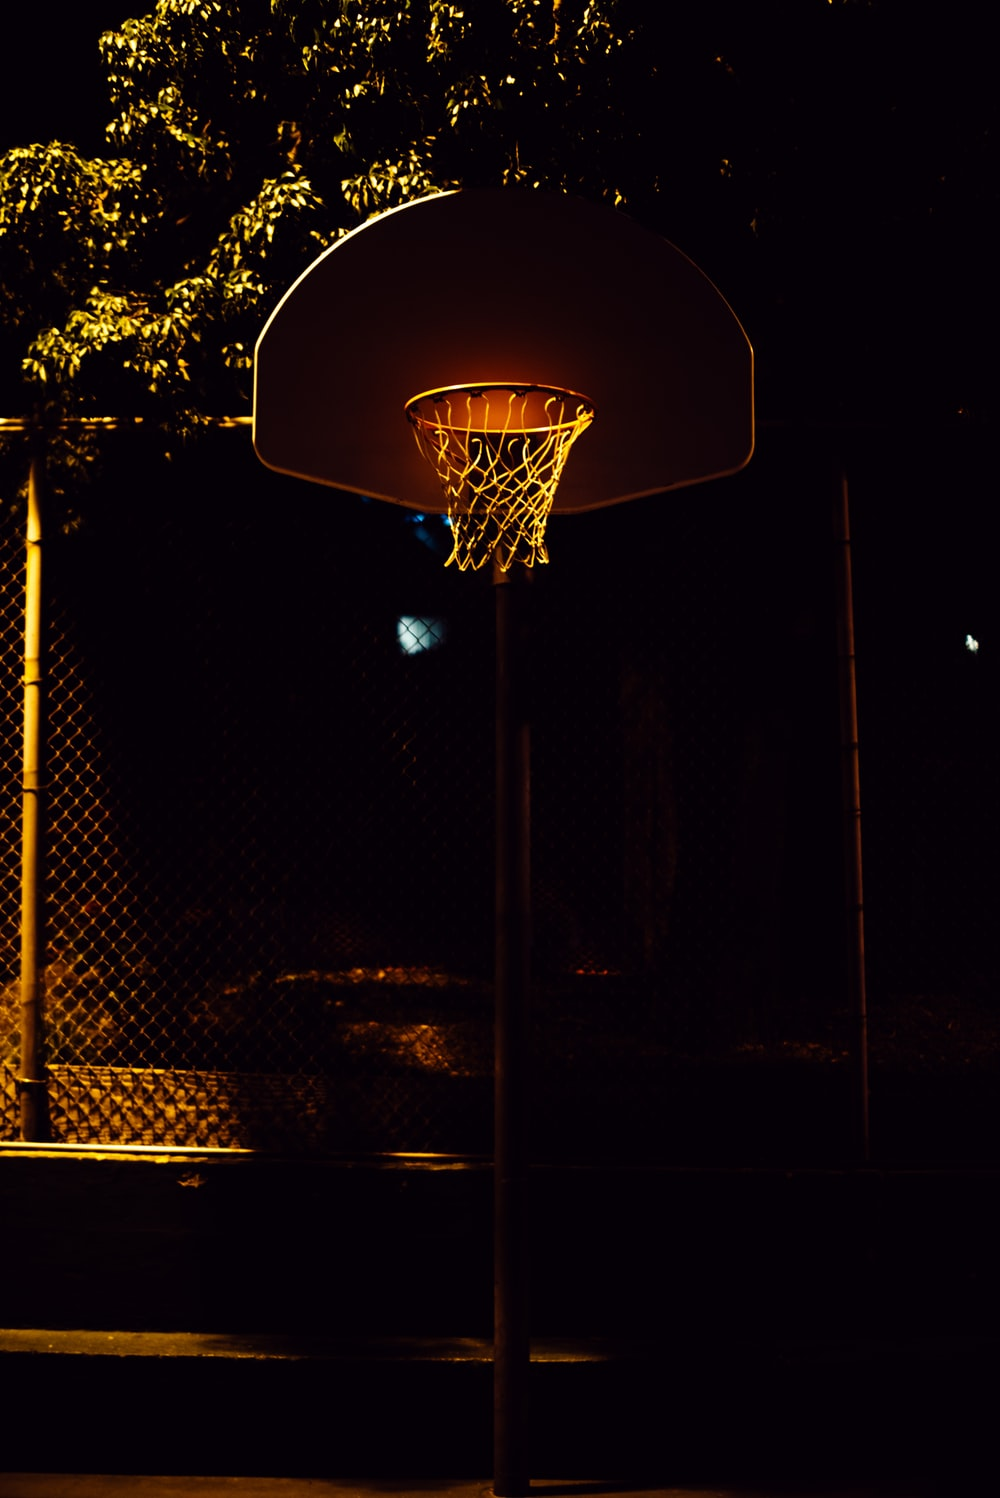 brown and white basketball hoop with net